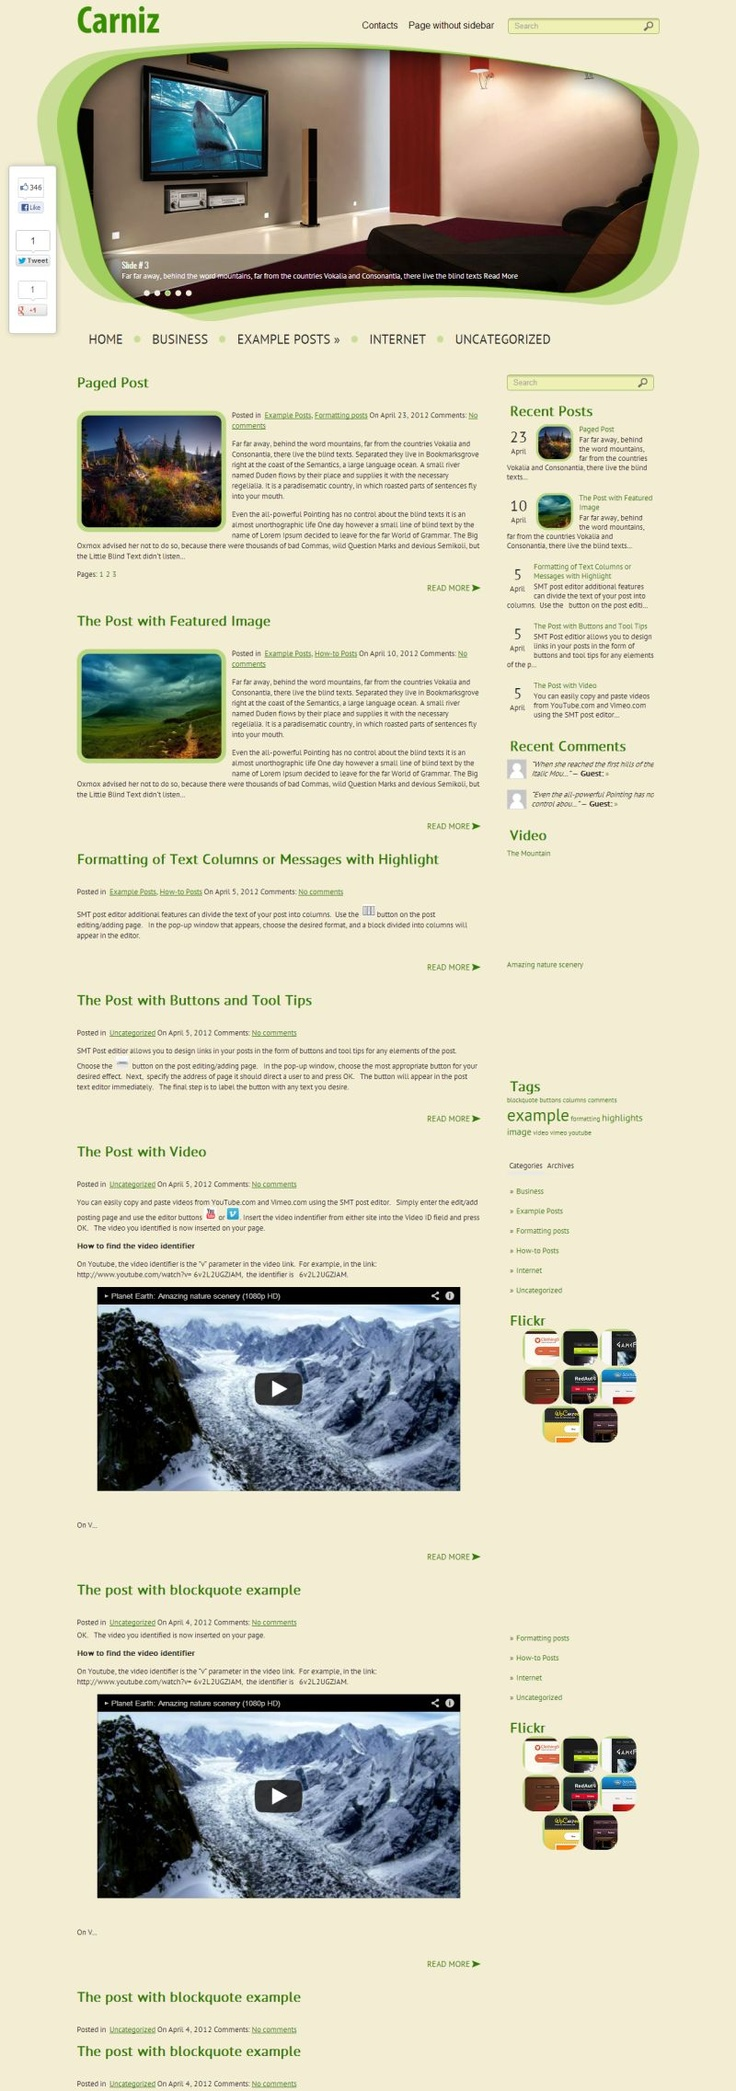 """Carniz"" is one of the best stylish and #free clean themes for interior #WordPress blog. Good-looking design."